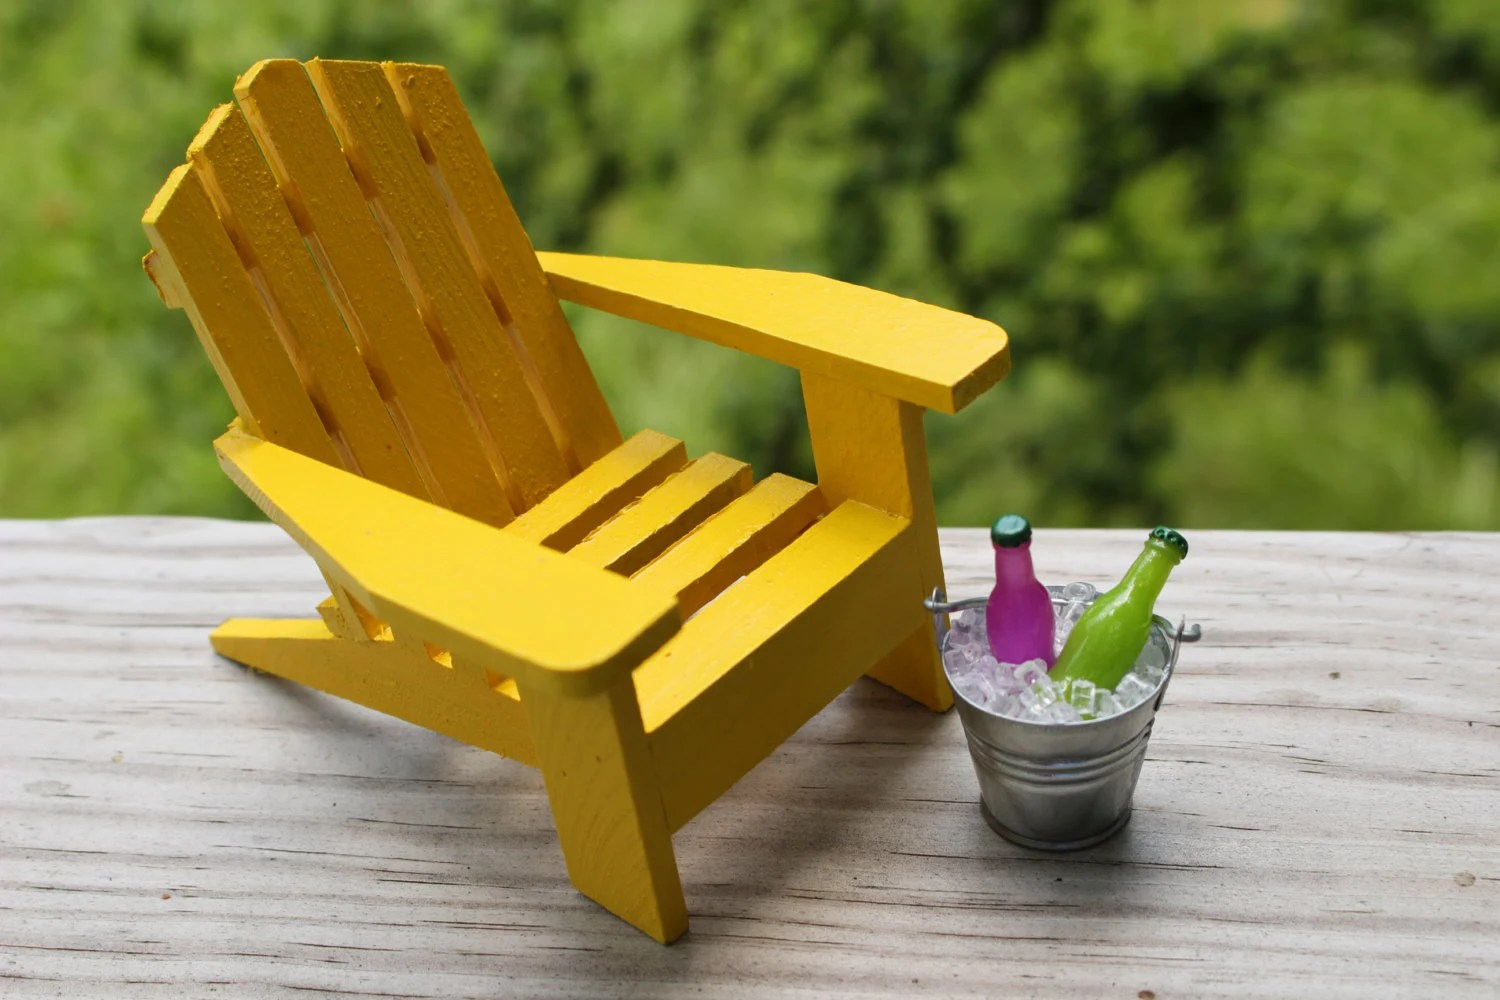 Mini Adirondack Chairs 1 Miniature Adirondack Chair Miniature Beach Chair Tin